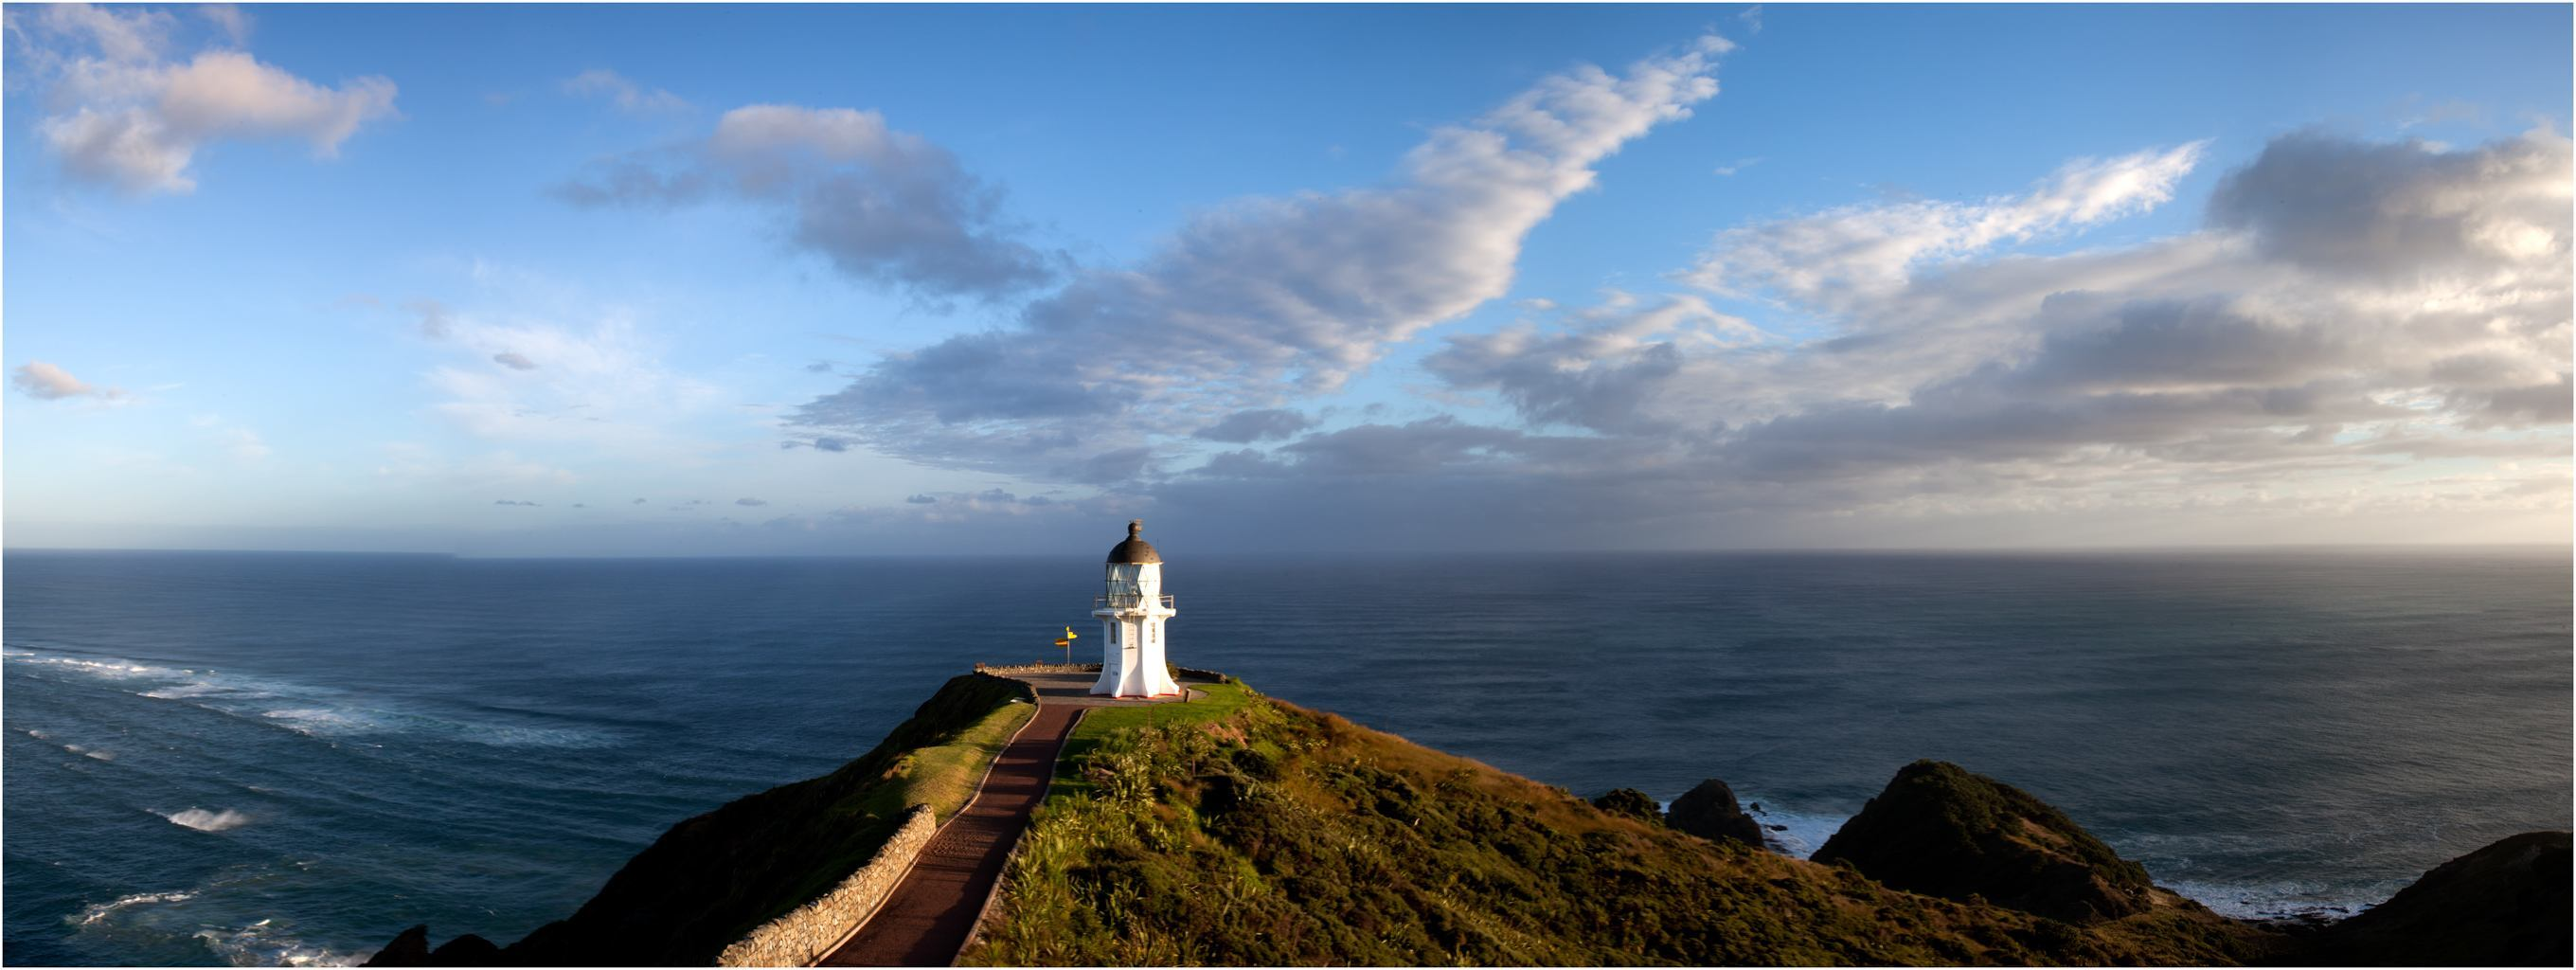 Hd Wallpaper 2014 Cape Reinga To Bluff The Ultimate Nz Road Trip New